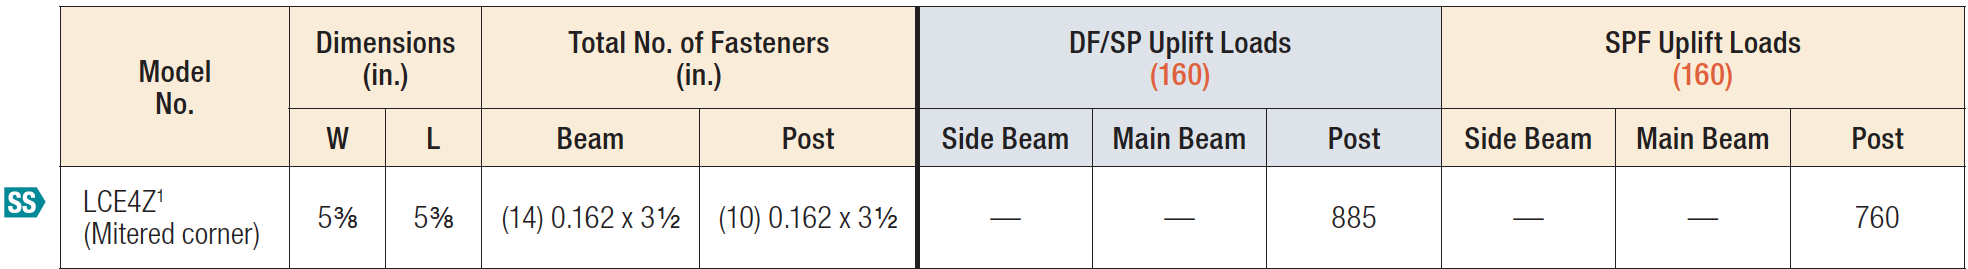 LCE4Z Post Caps Load Table